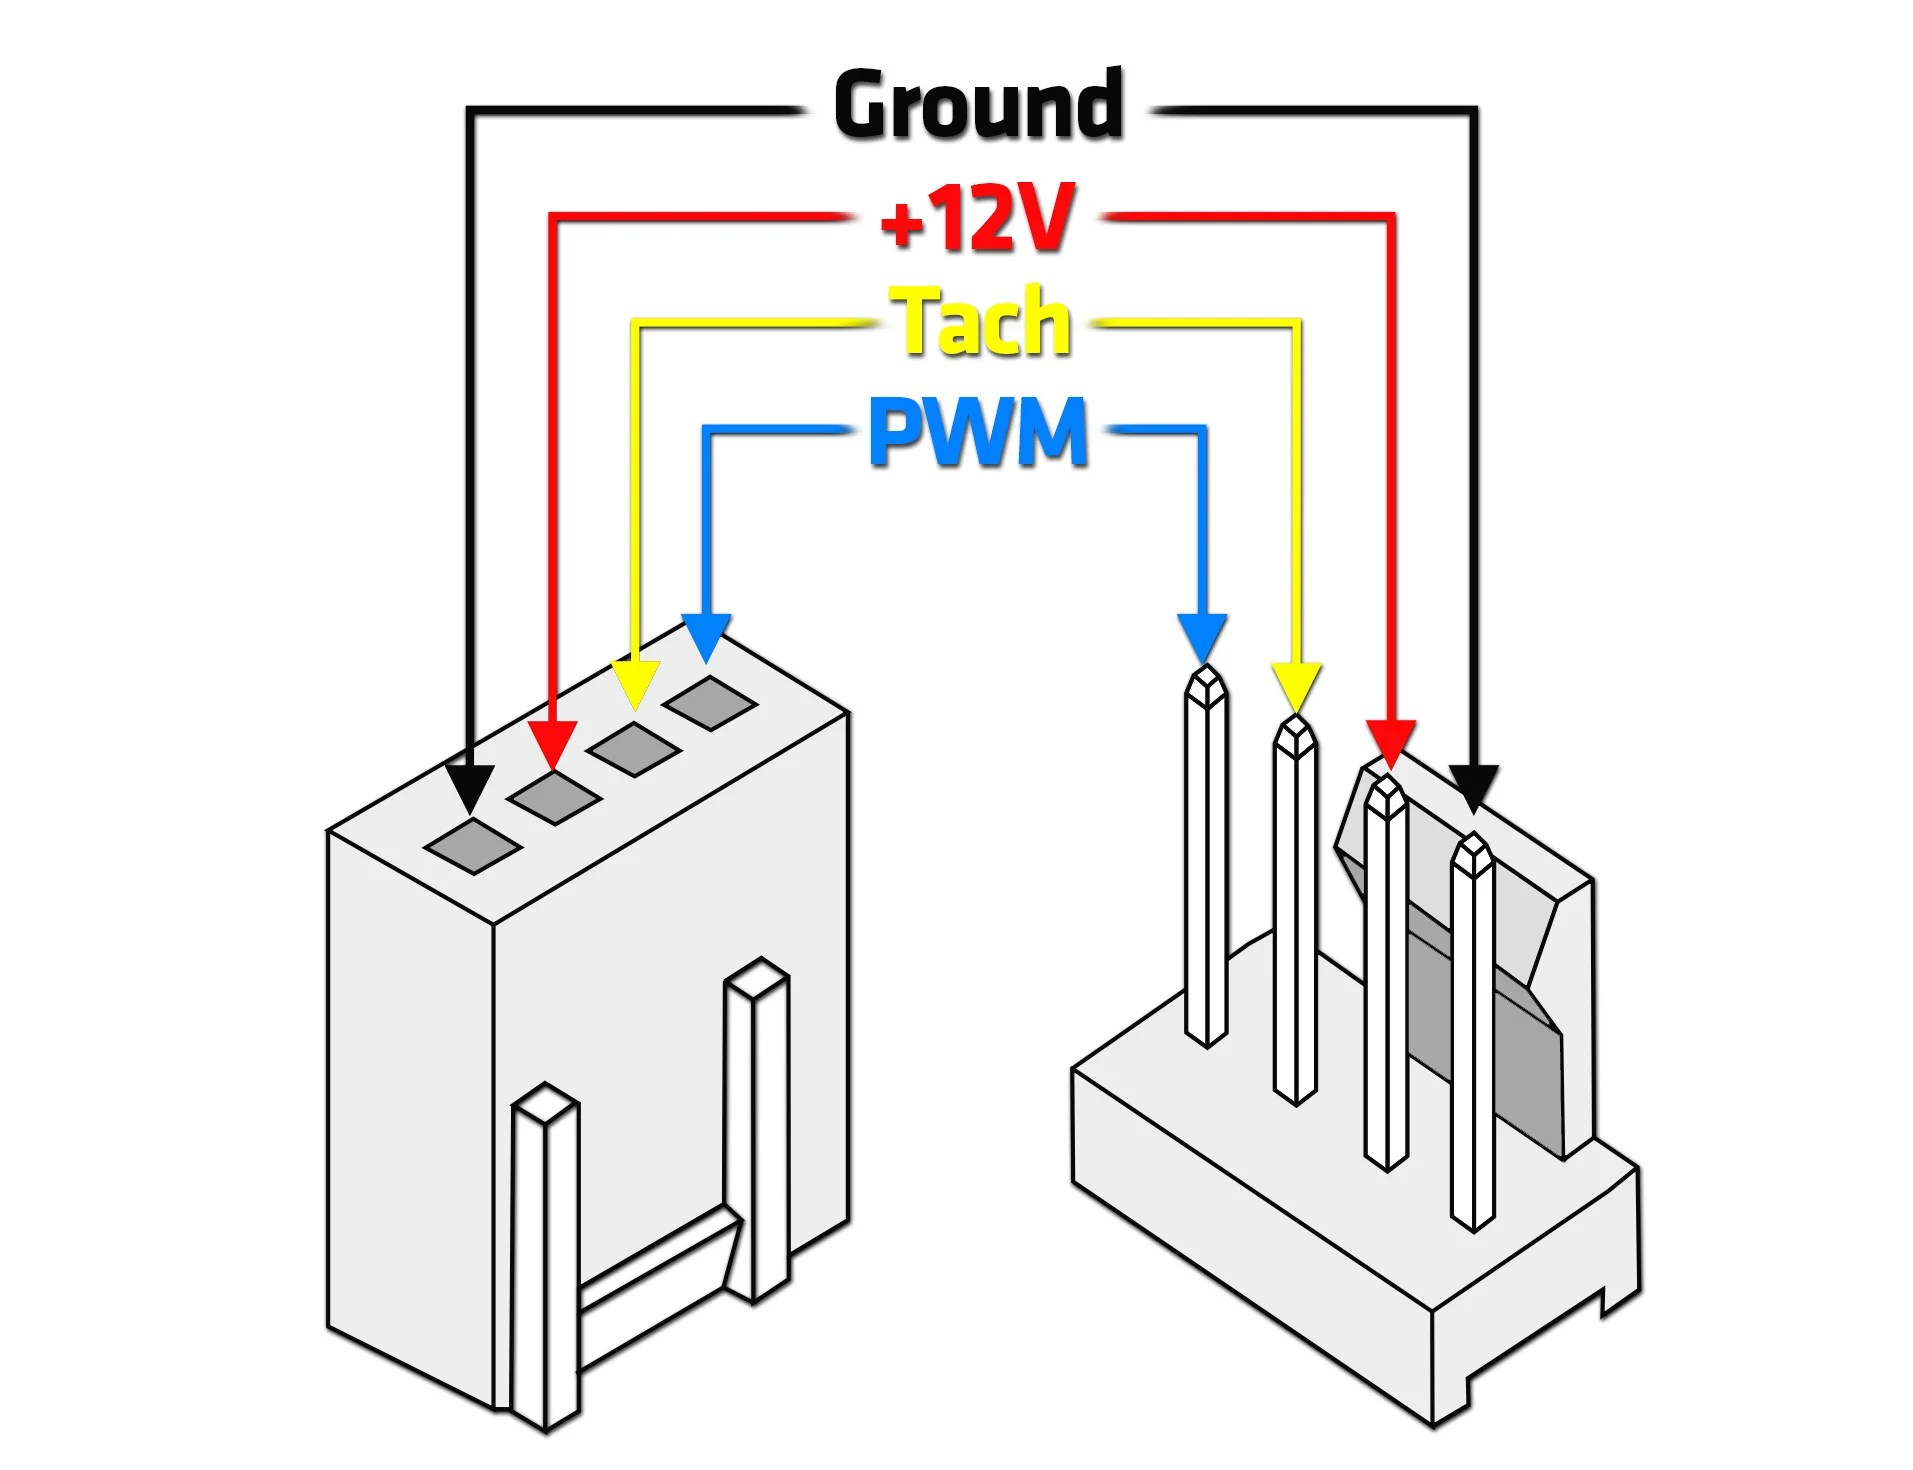 M5350 Rheem Wiring Diagram Guide And Troubleshooting Of Ac Schematics Library Rh 57 Budoshop4you De Air Handler